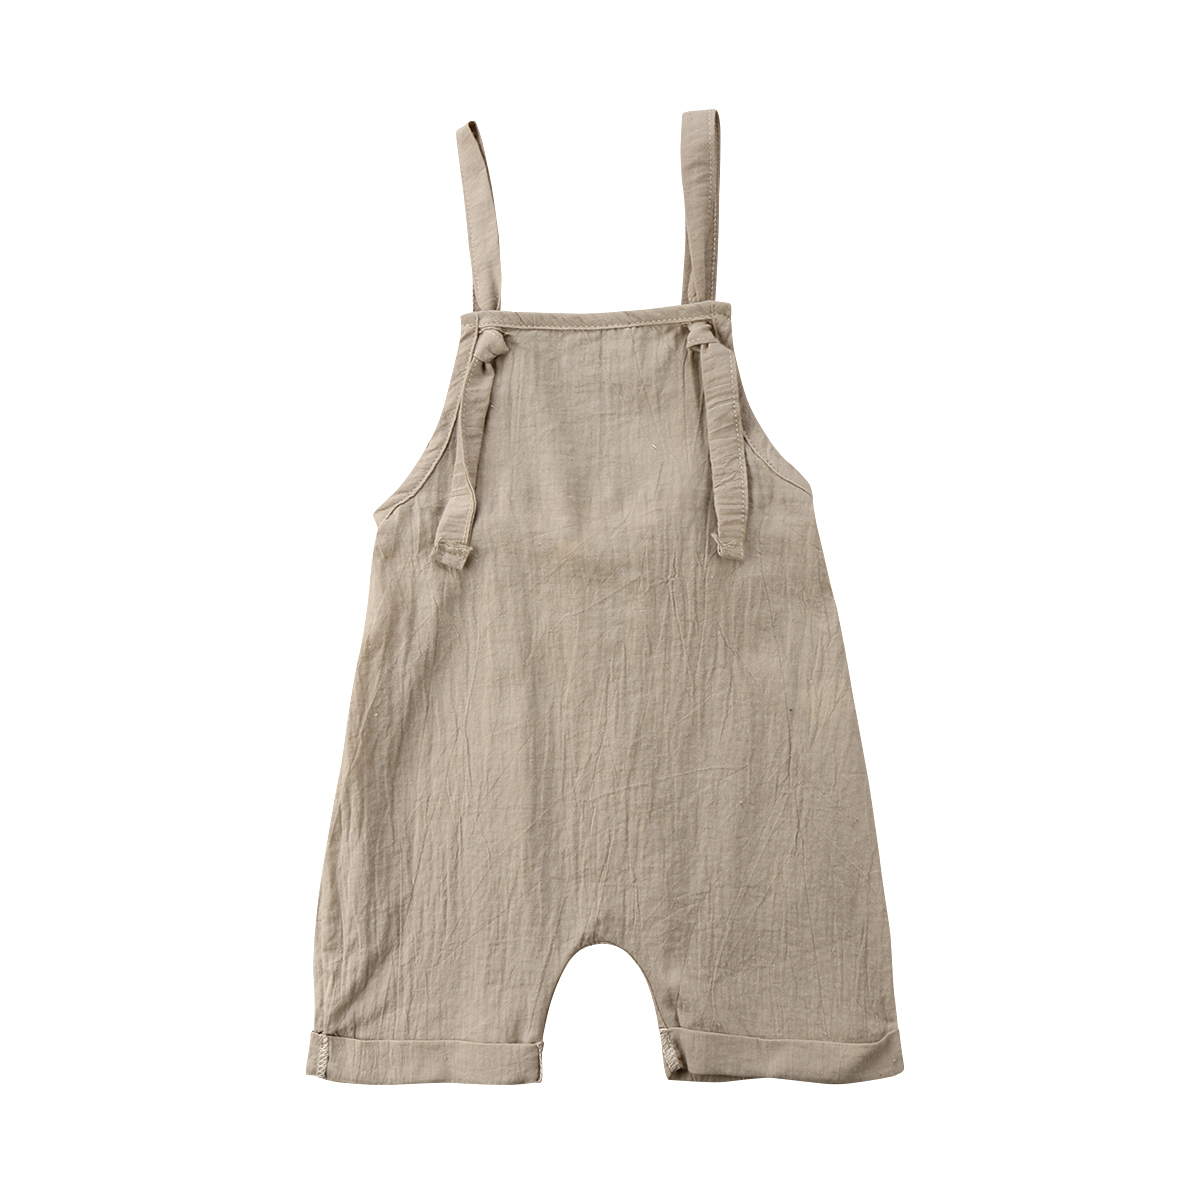 Toddler Baby Kid Sleeveless Cotton Romper Shorts Overalls Pant Playsuit Jumpsuit